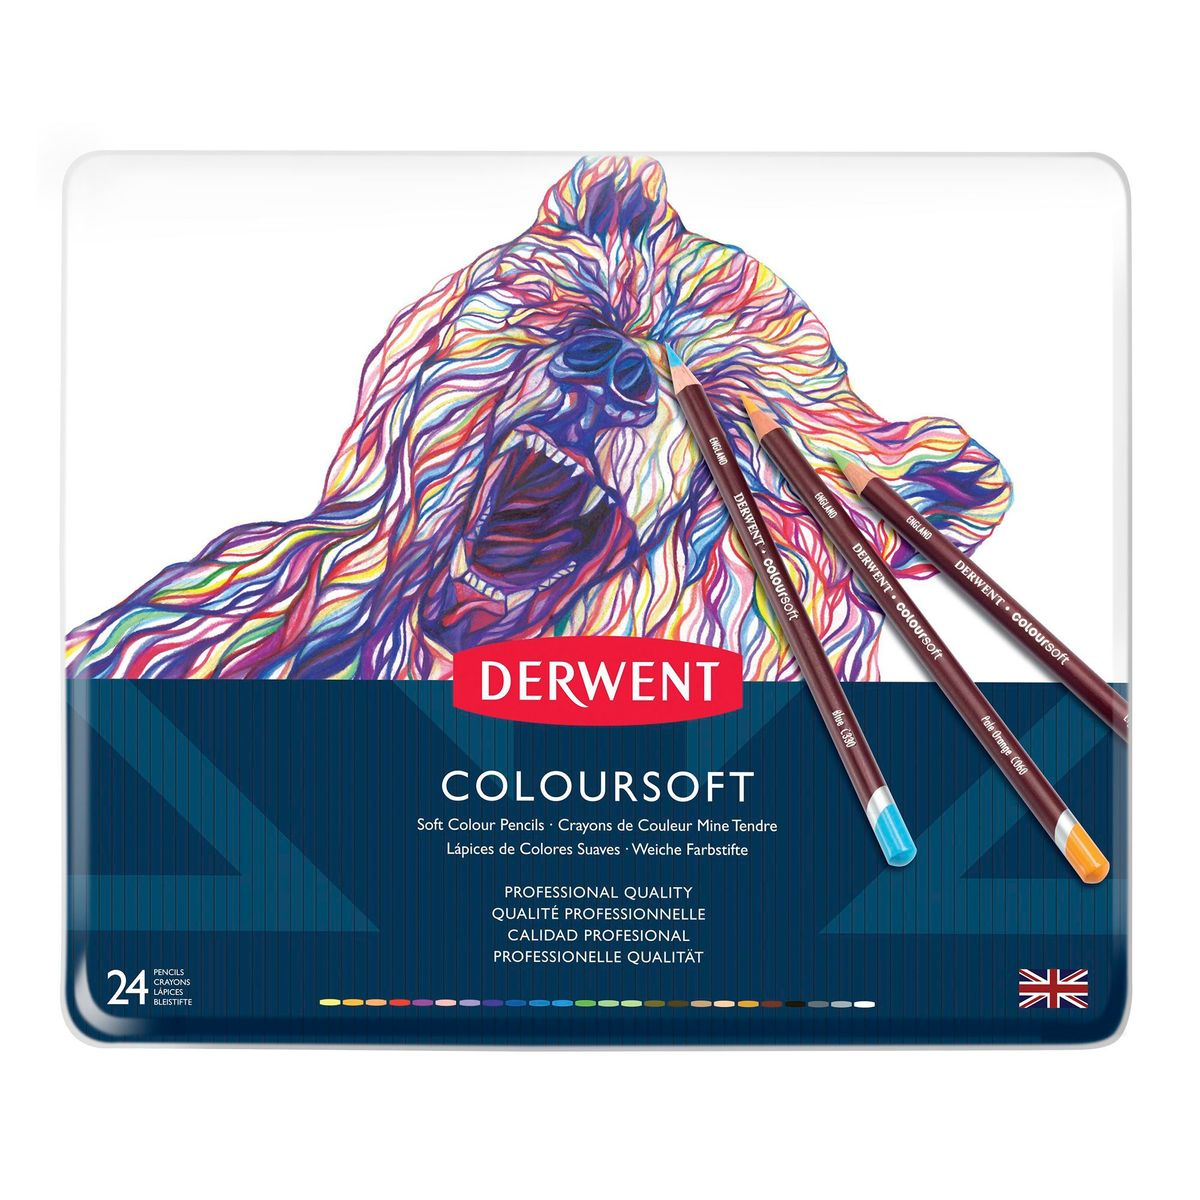 KIT COLOURSOFT C/ 24 CORES